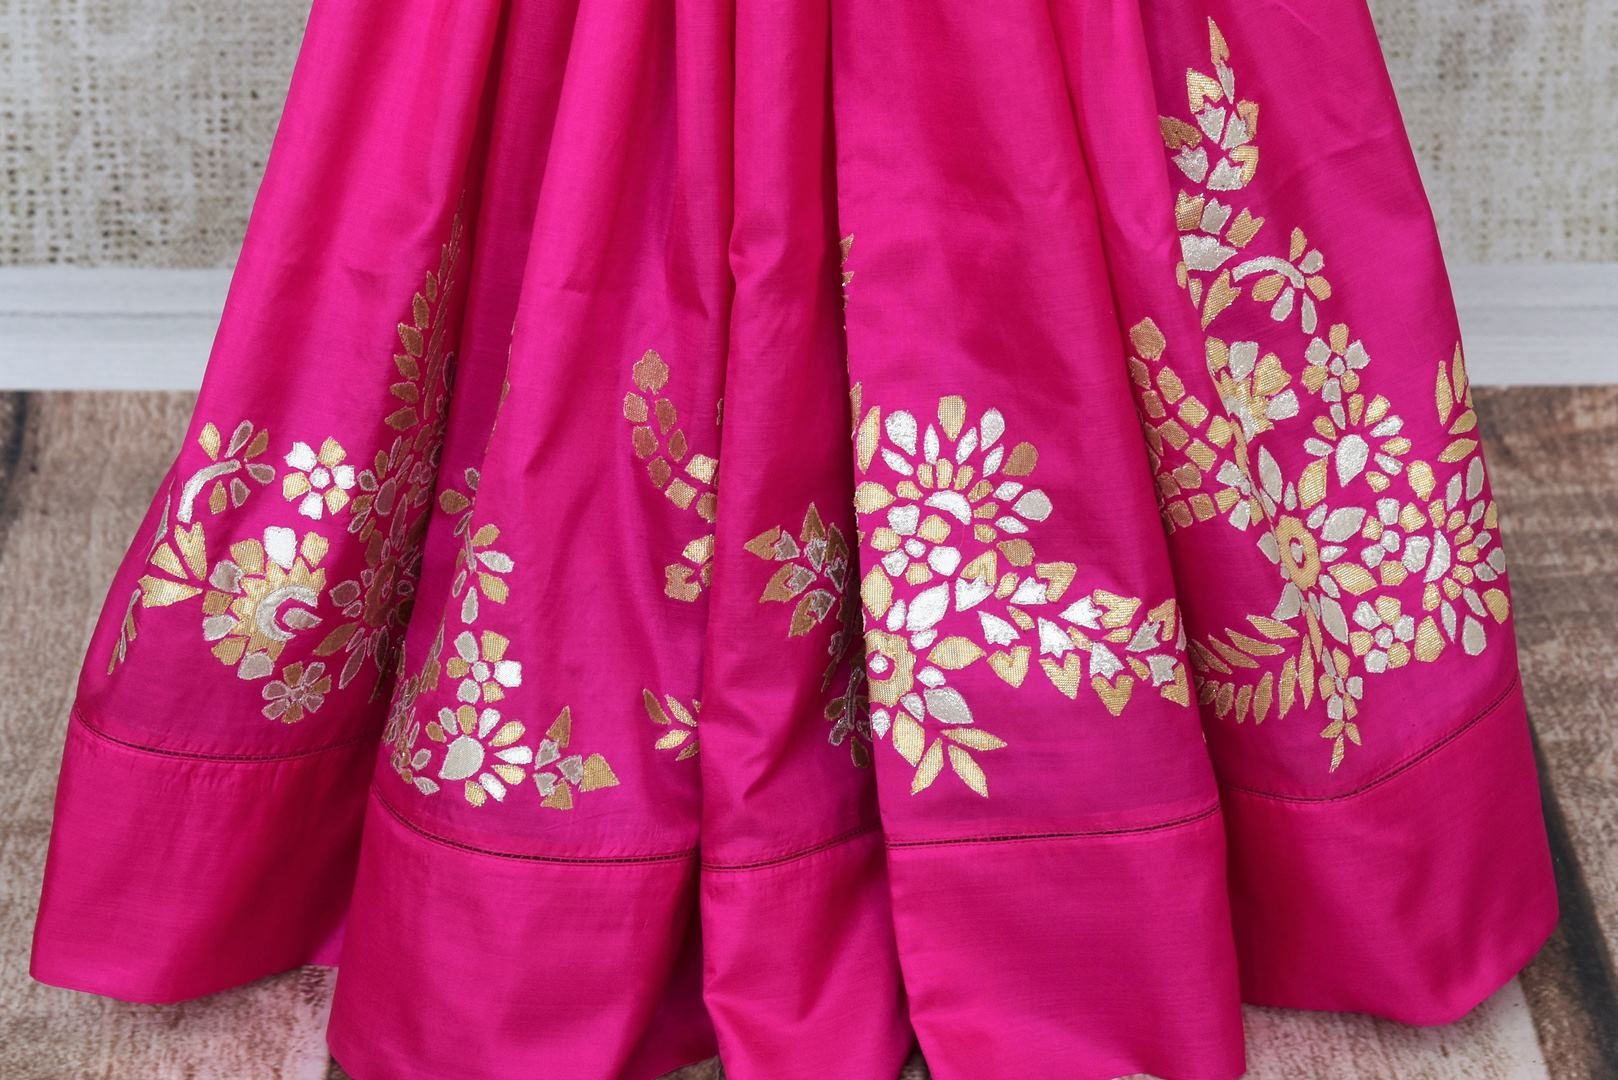 Pink applique work silk saree buy online in USA. The saree comes with a stunning red saree blouse which elevates the style quotient of the sari. If you are looking for Indian designer sarees in USA, then Pure Elegance clothing store is your one stop solution, shop now.-pleats